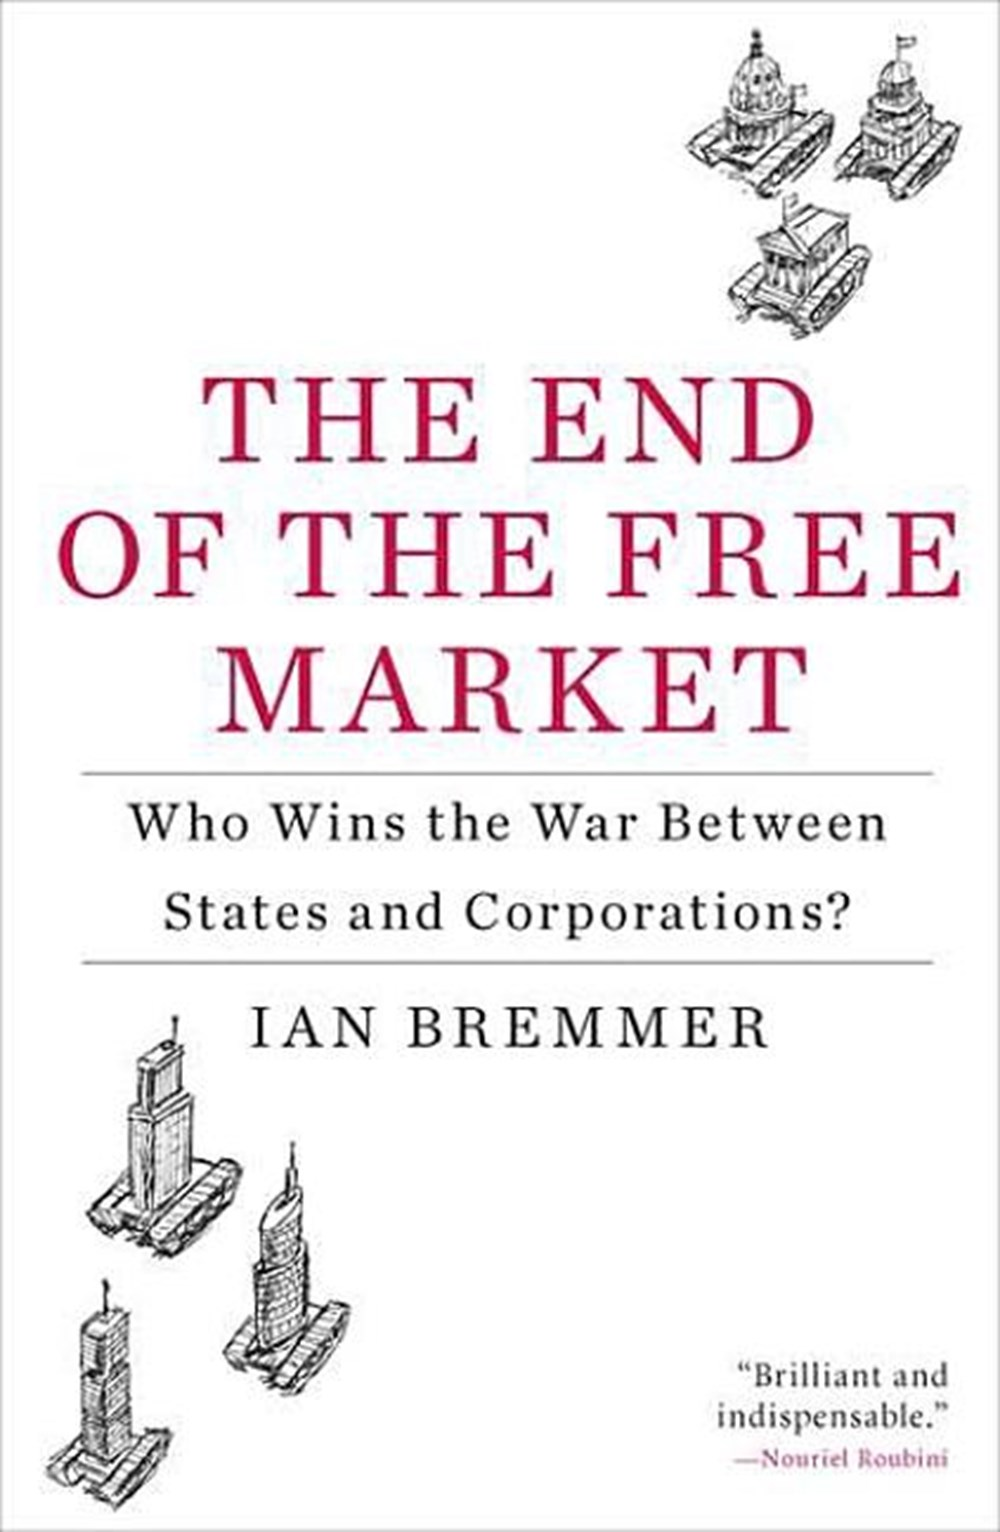 End of the Free Market Who Wins the War Between States and Corporations?